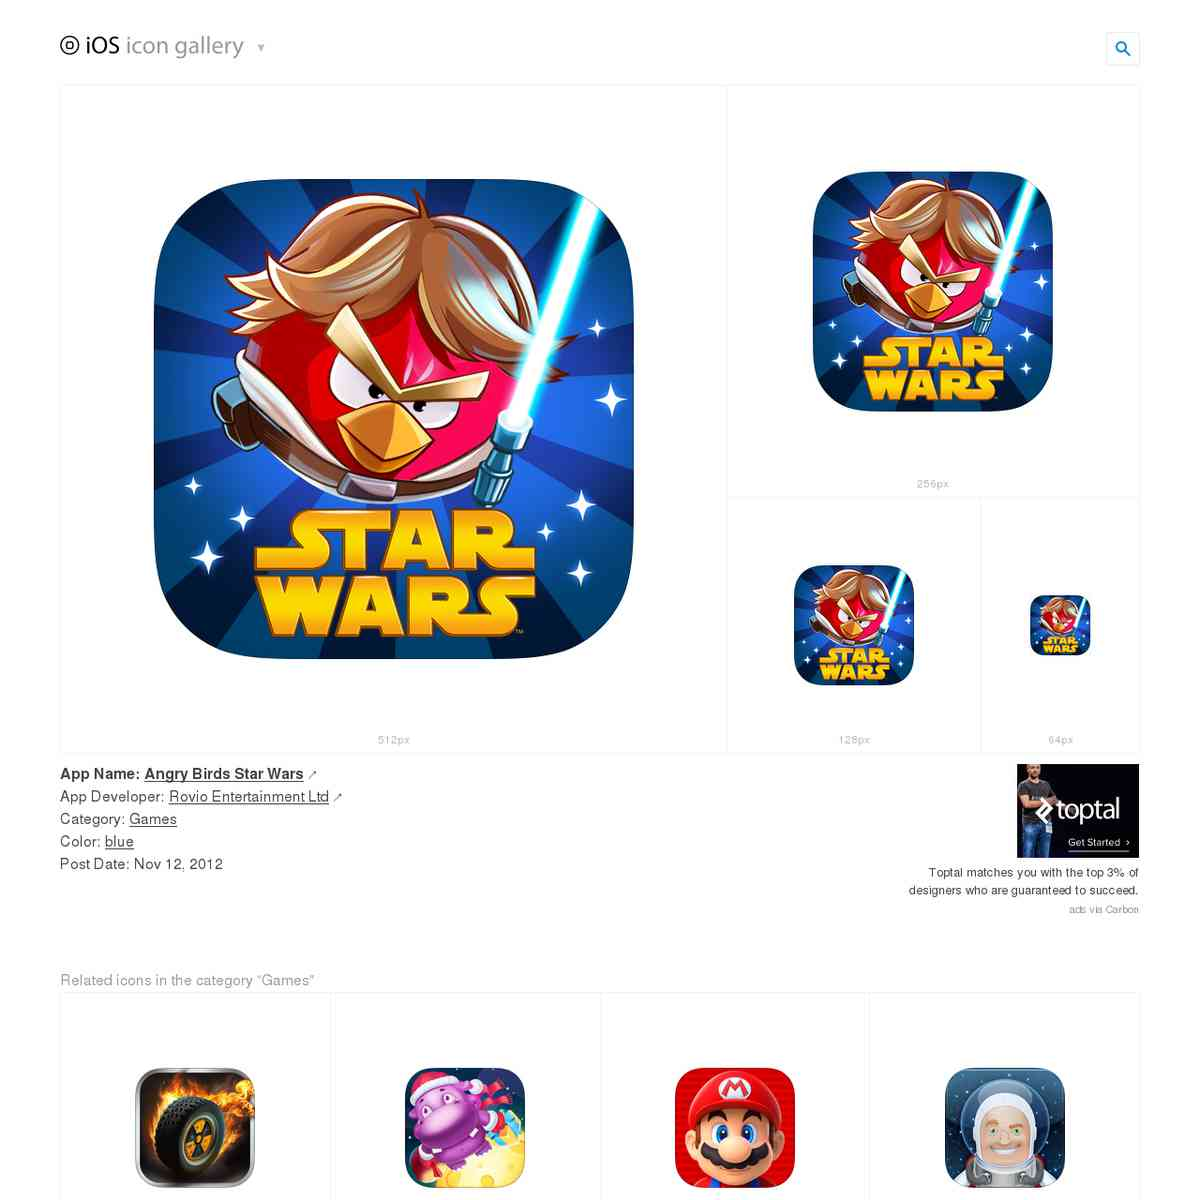 iosicongallery.com/games/angry-birds-star-wars/